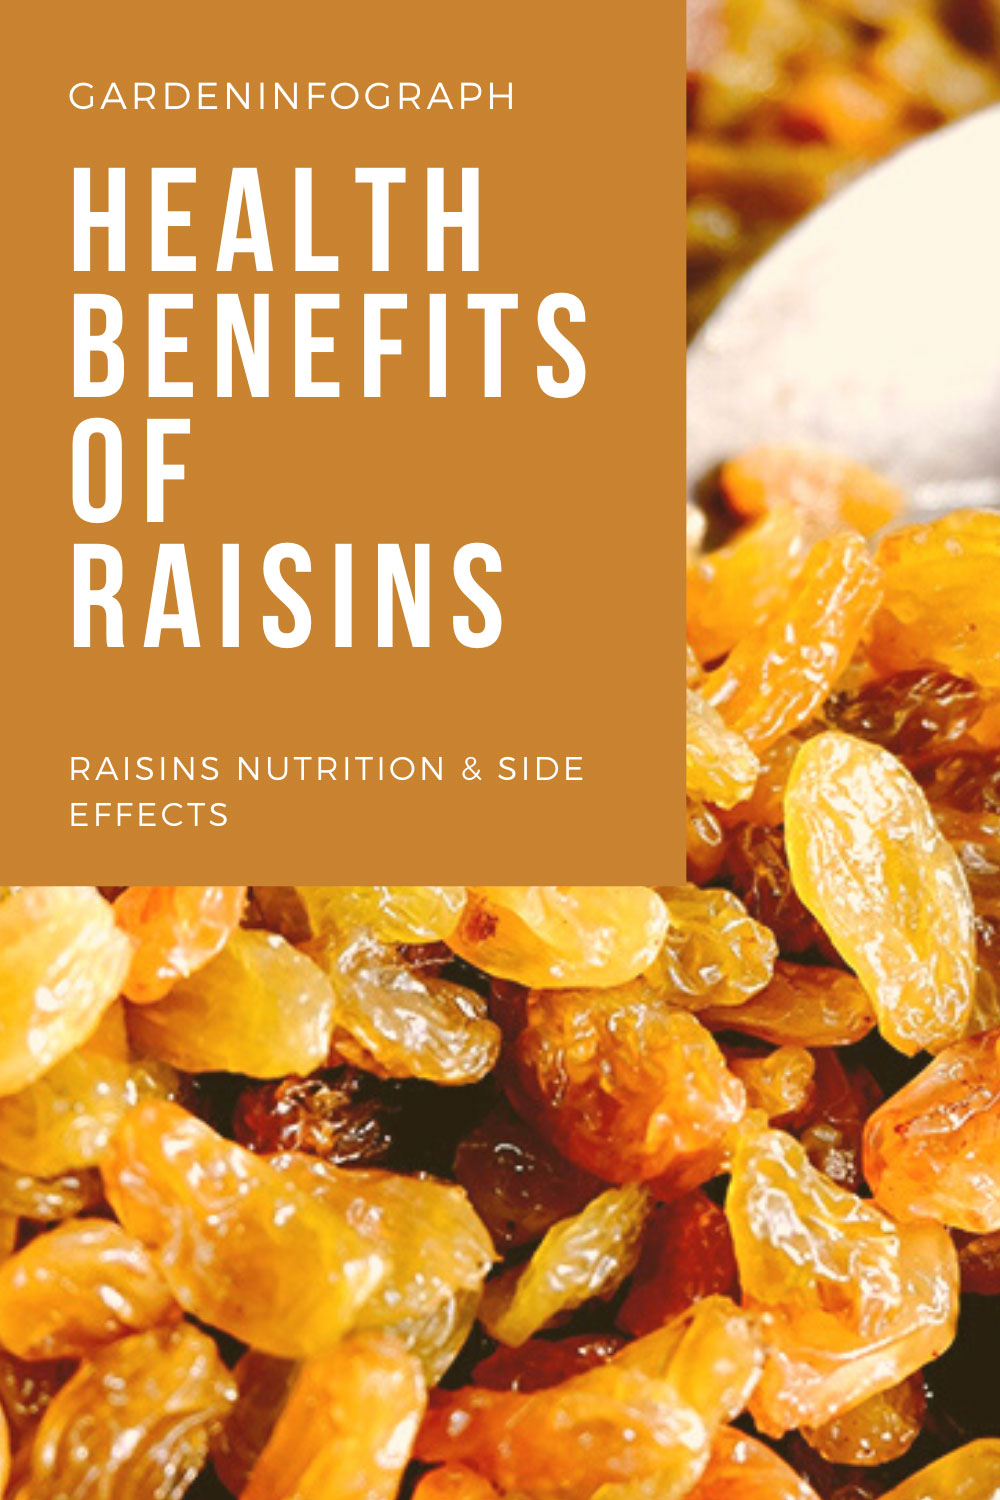 health benefits of saisins